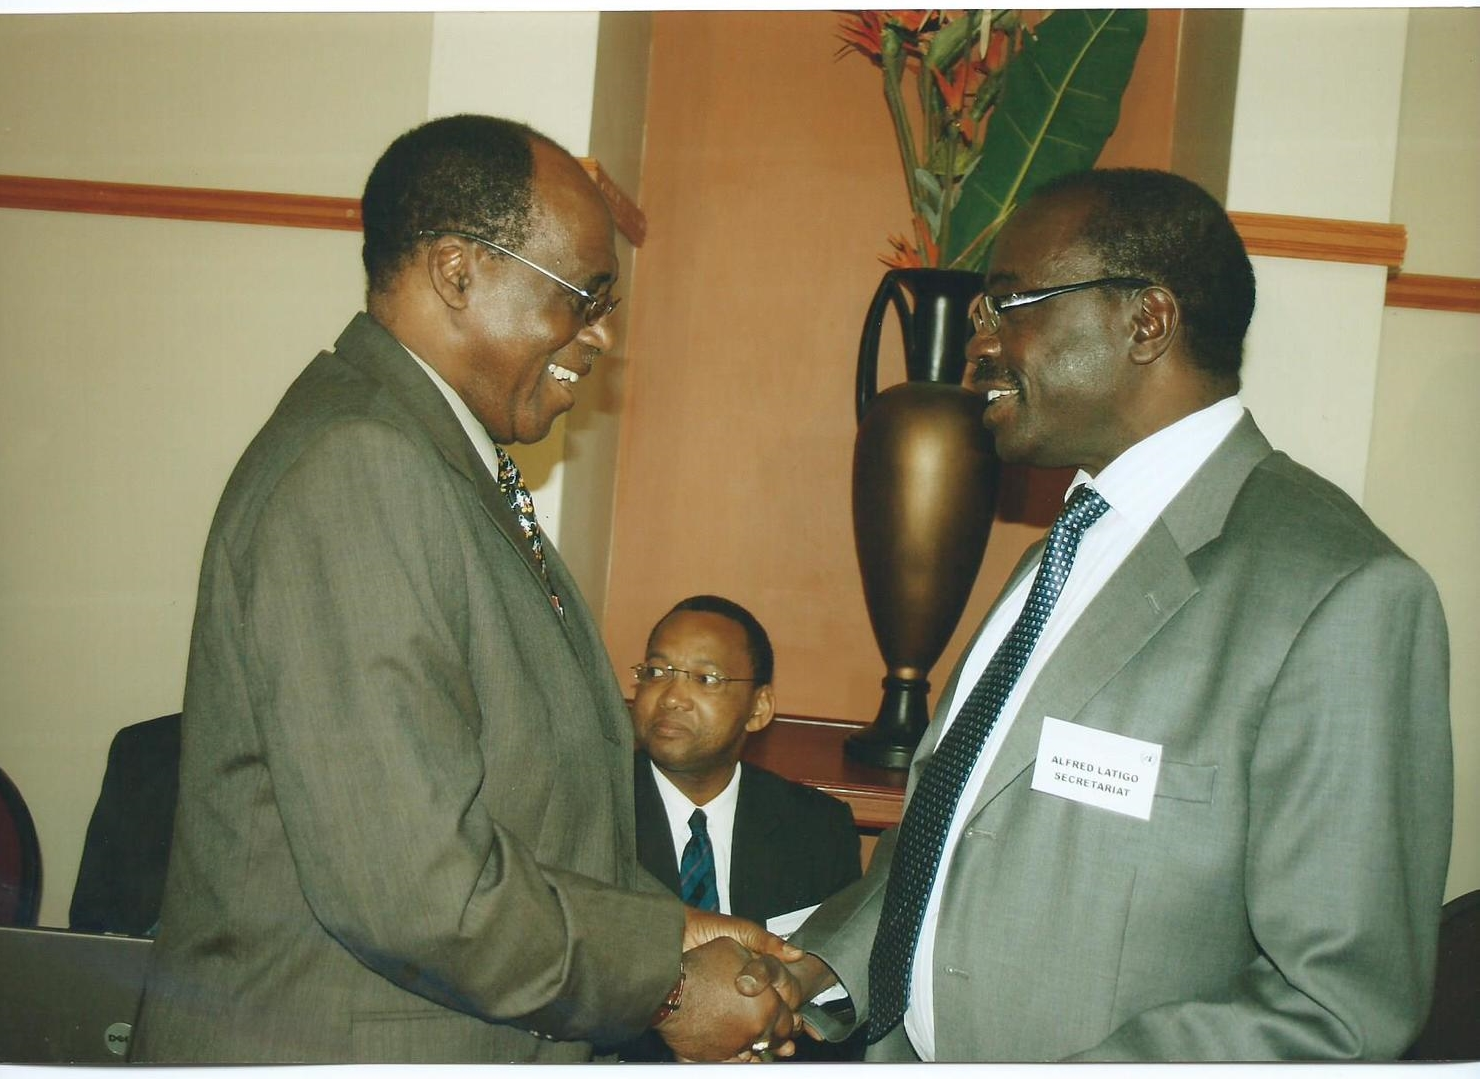 Prof. Ralph O Olaniyan, GIDE Board Director Chatting with Dr. Alfred Latigo at a Meeting in Johannesburg, South Africa, 2010. Prof. Olaniyan is the President of the R&G Economic Consultants LLC, USA a partner institution of GIDE.